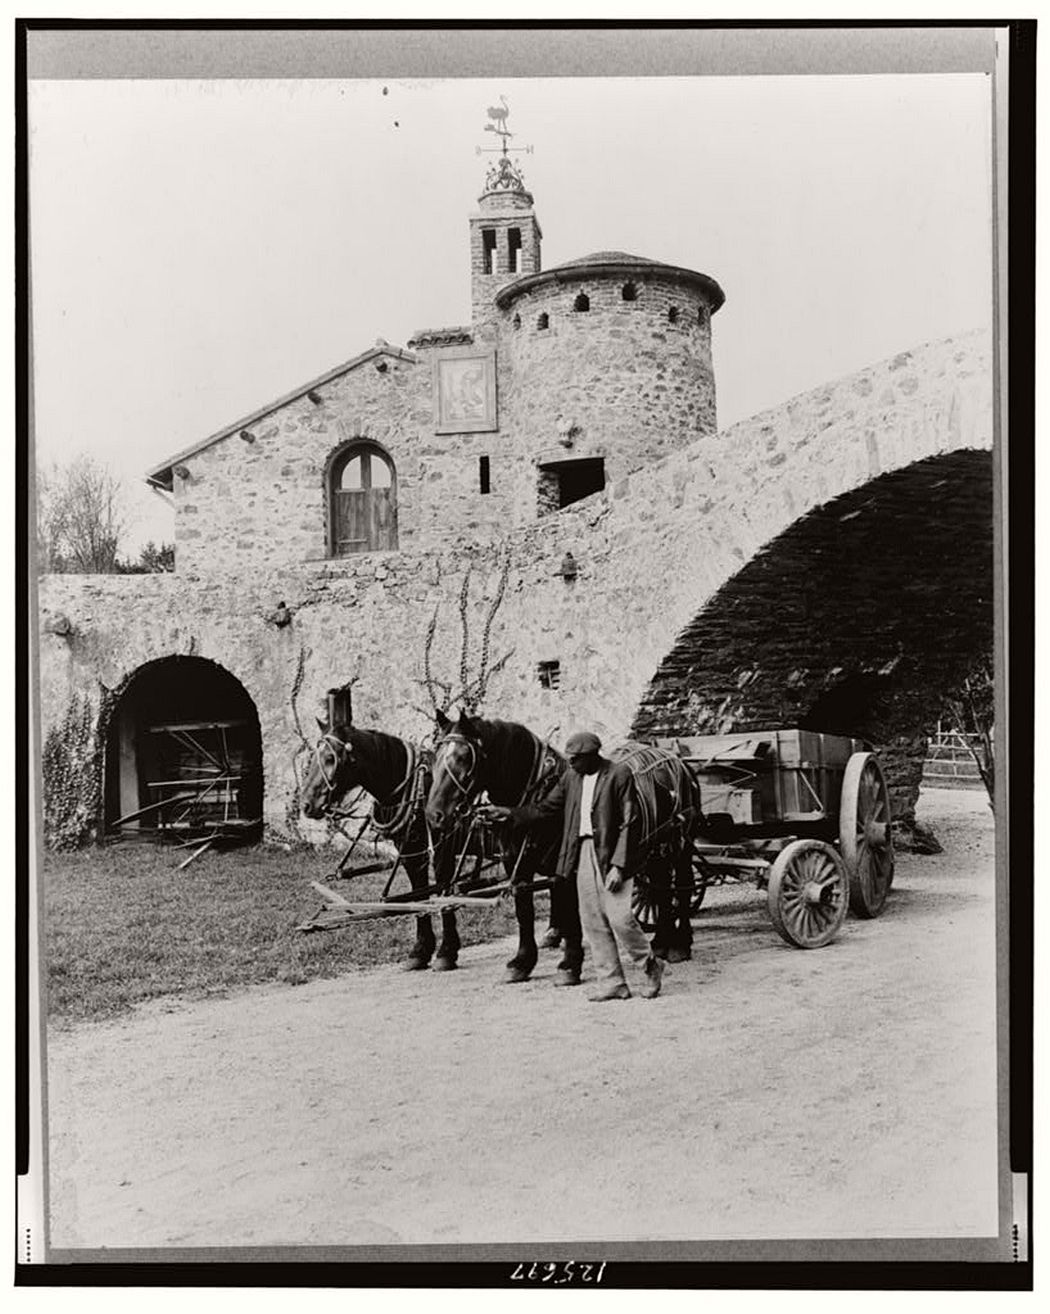 Courtyard with wagon and team and African American workman, 1917.